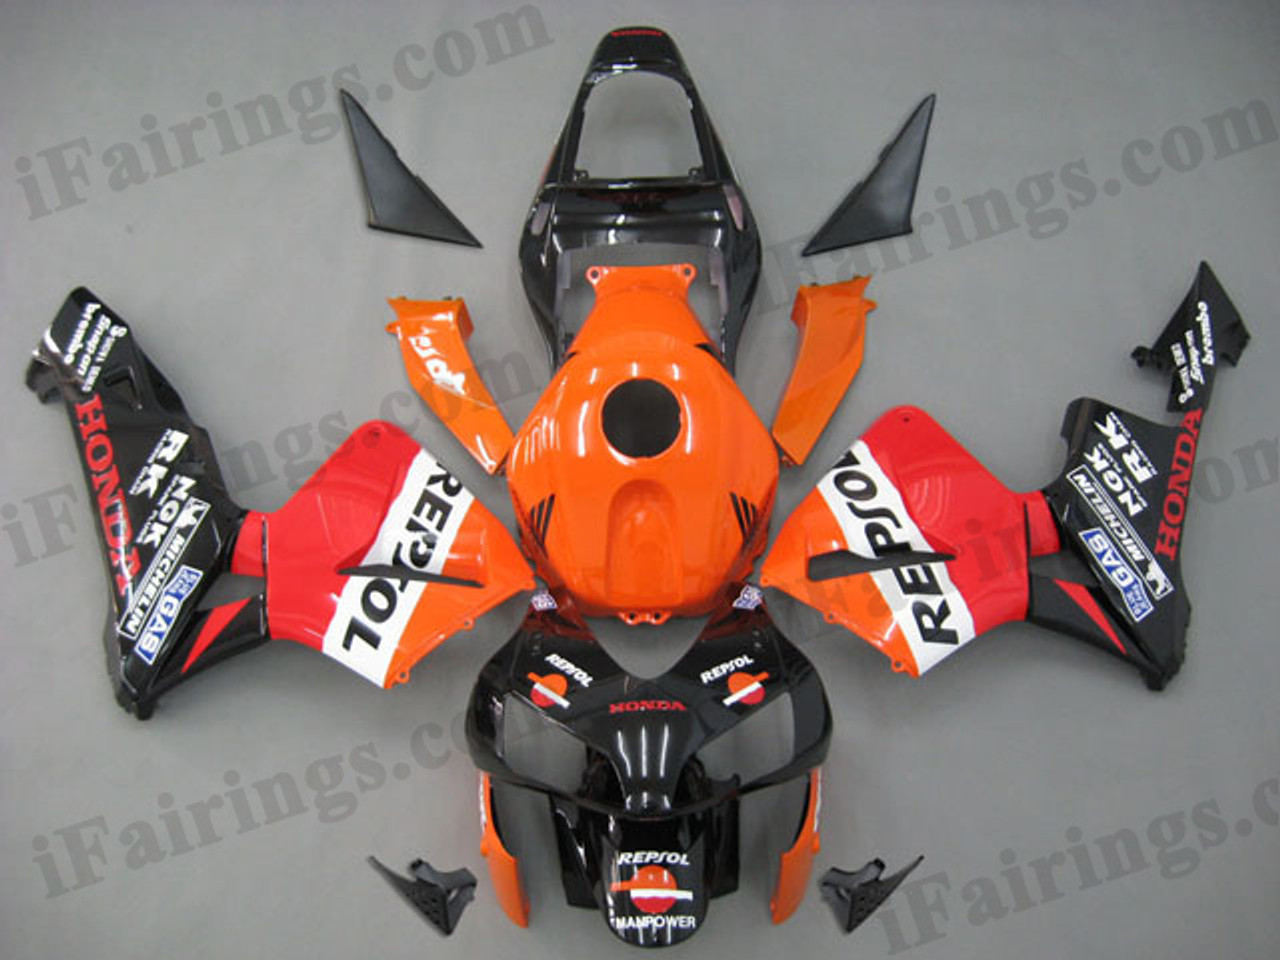 aftermarket fairing kit for CBR600RR 2003 2004 Repsol graphics